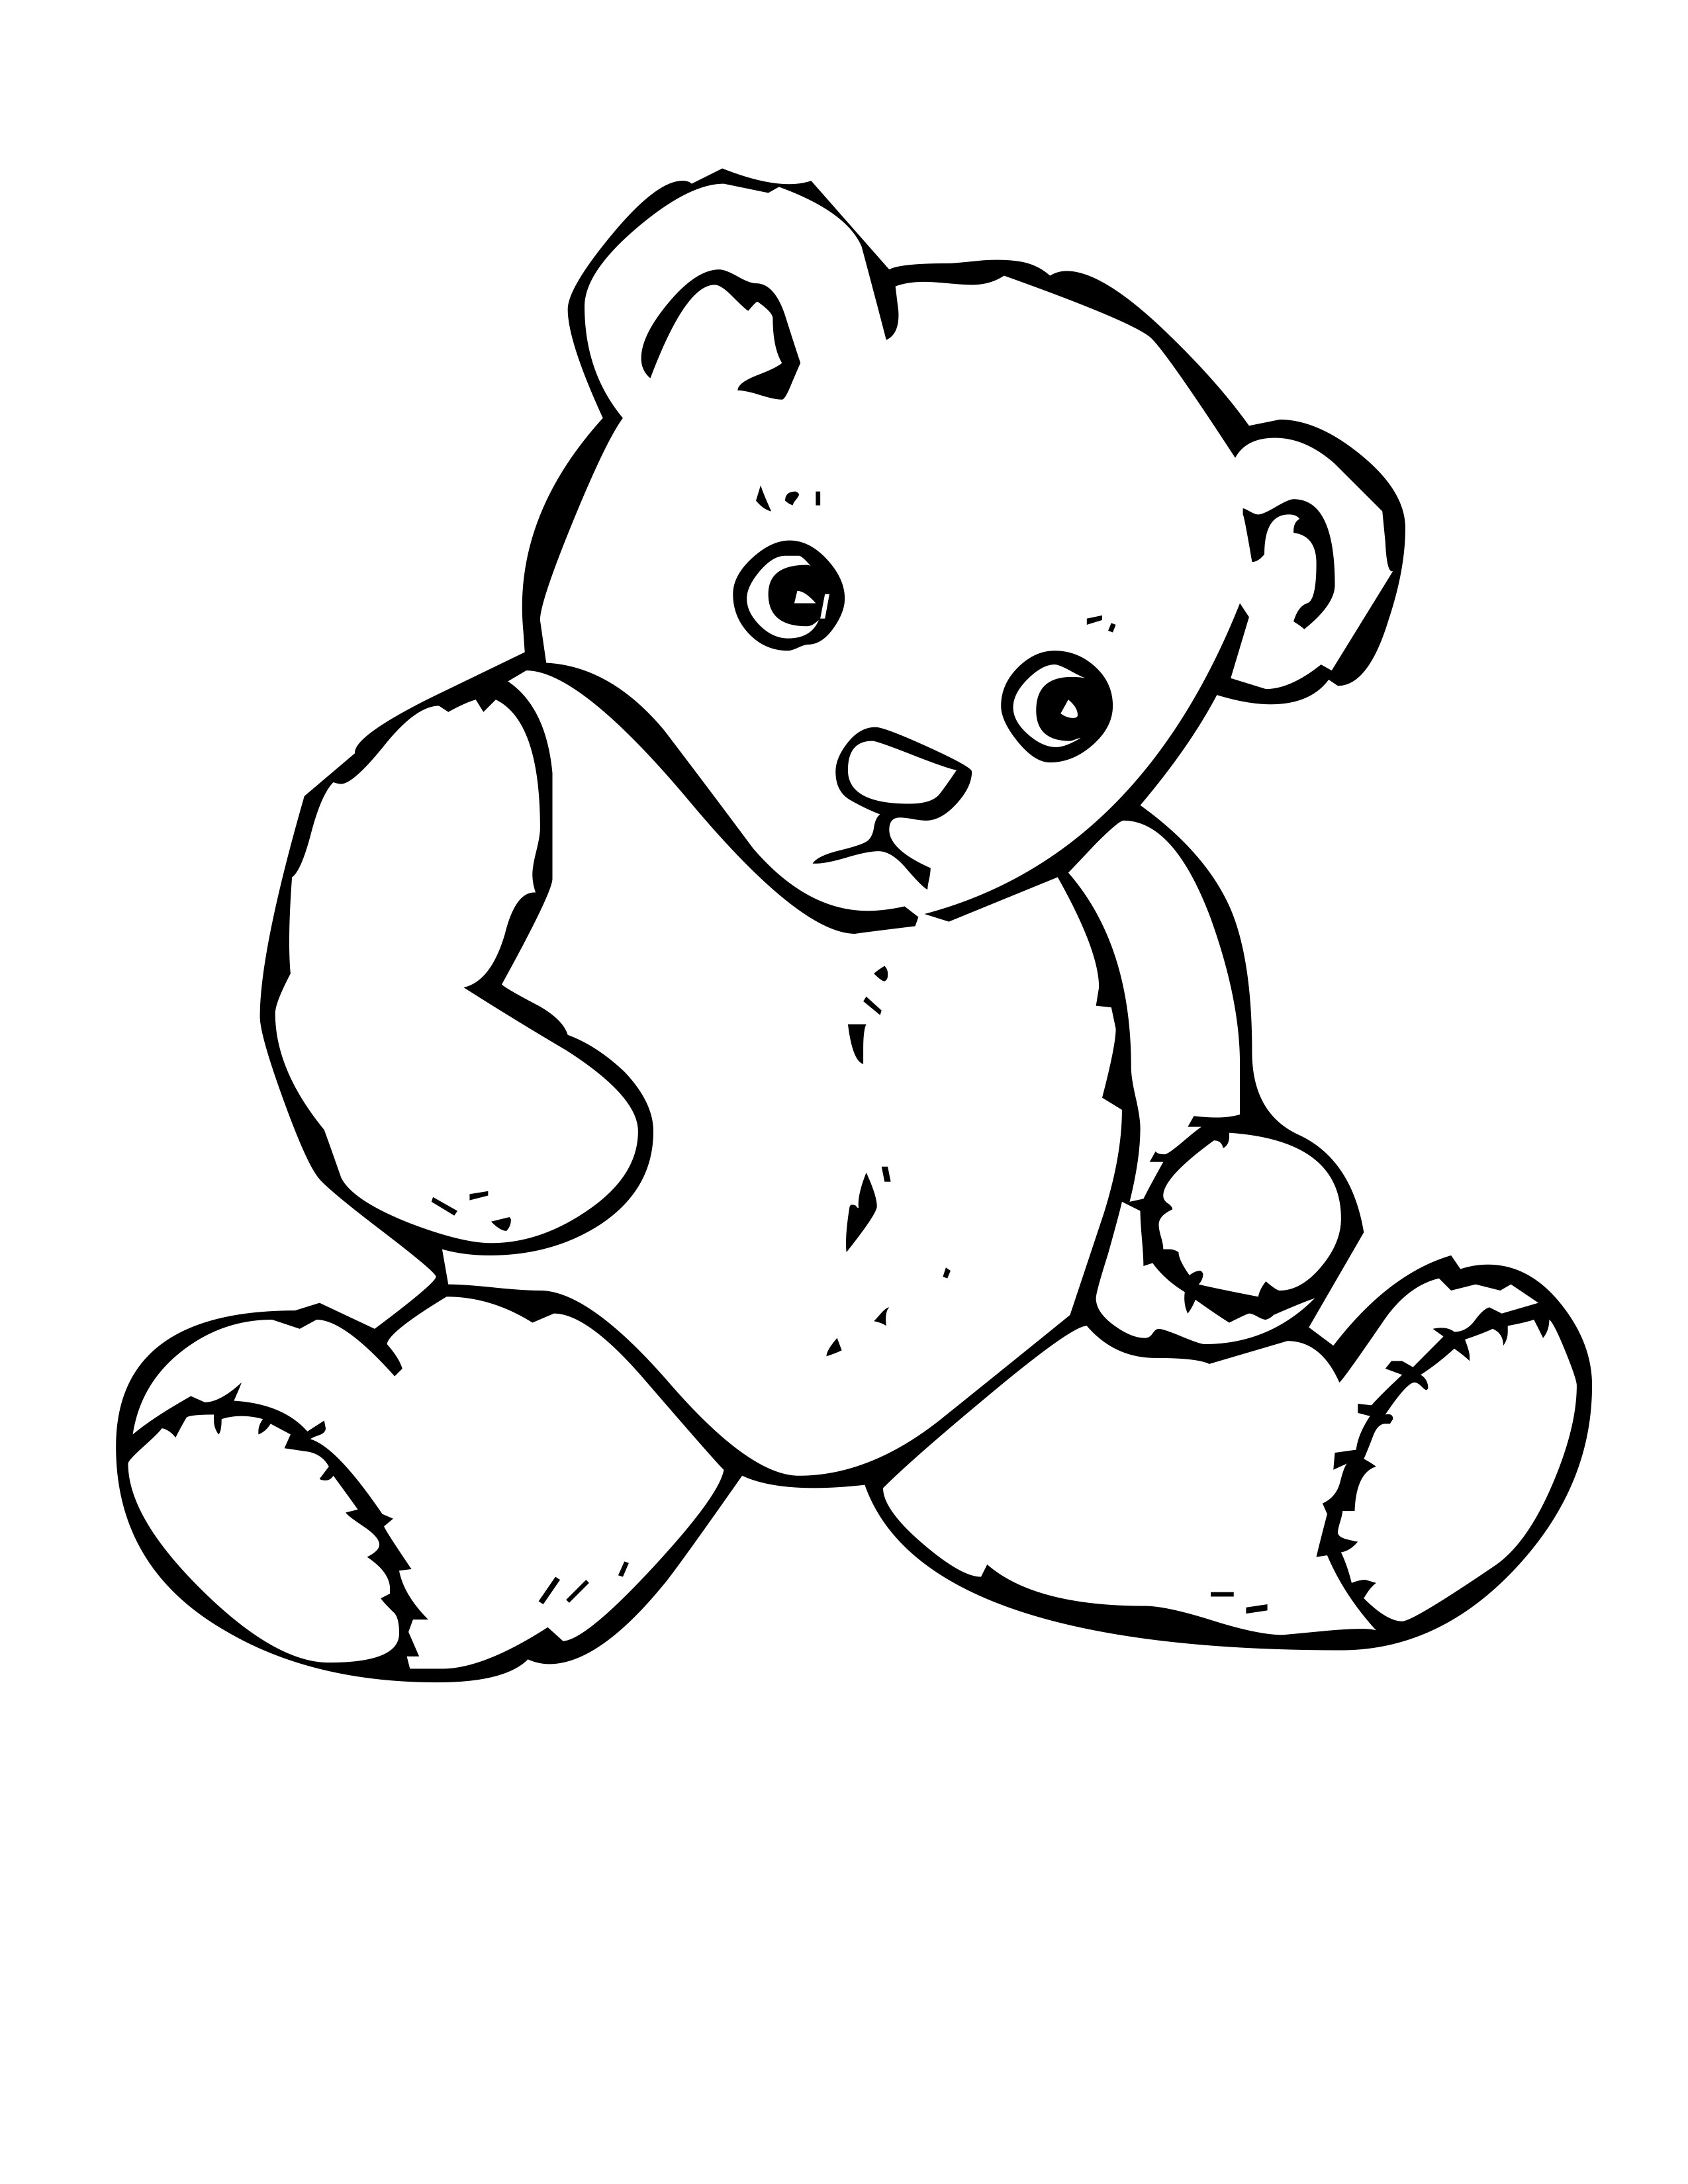 Line Drawing Teddy Bear : Line drawing teddy bear free download best